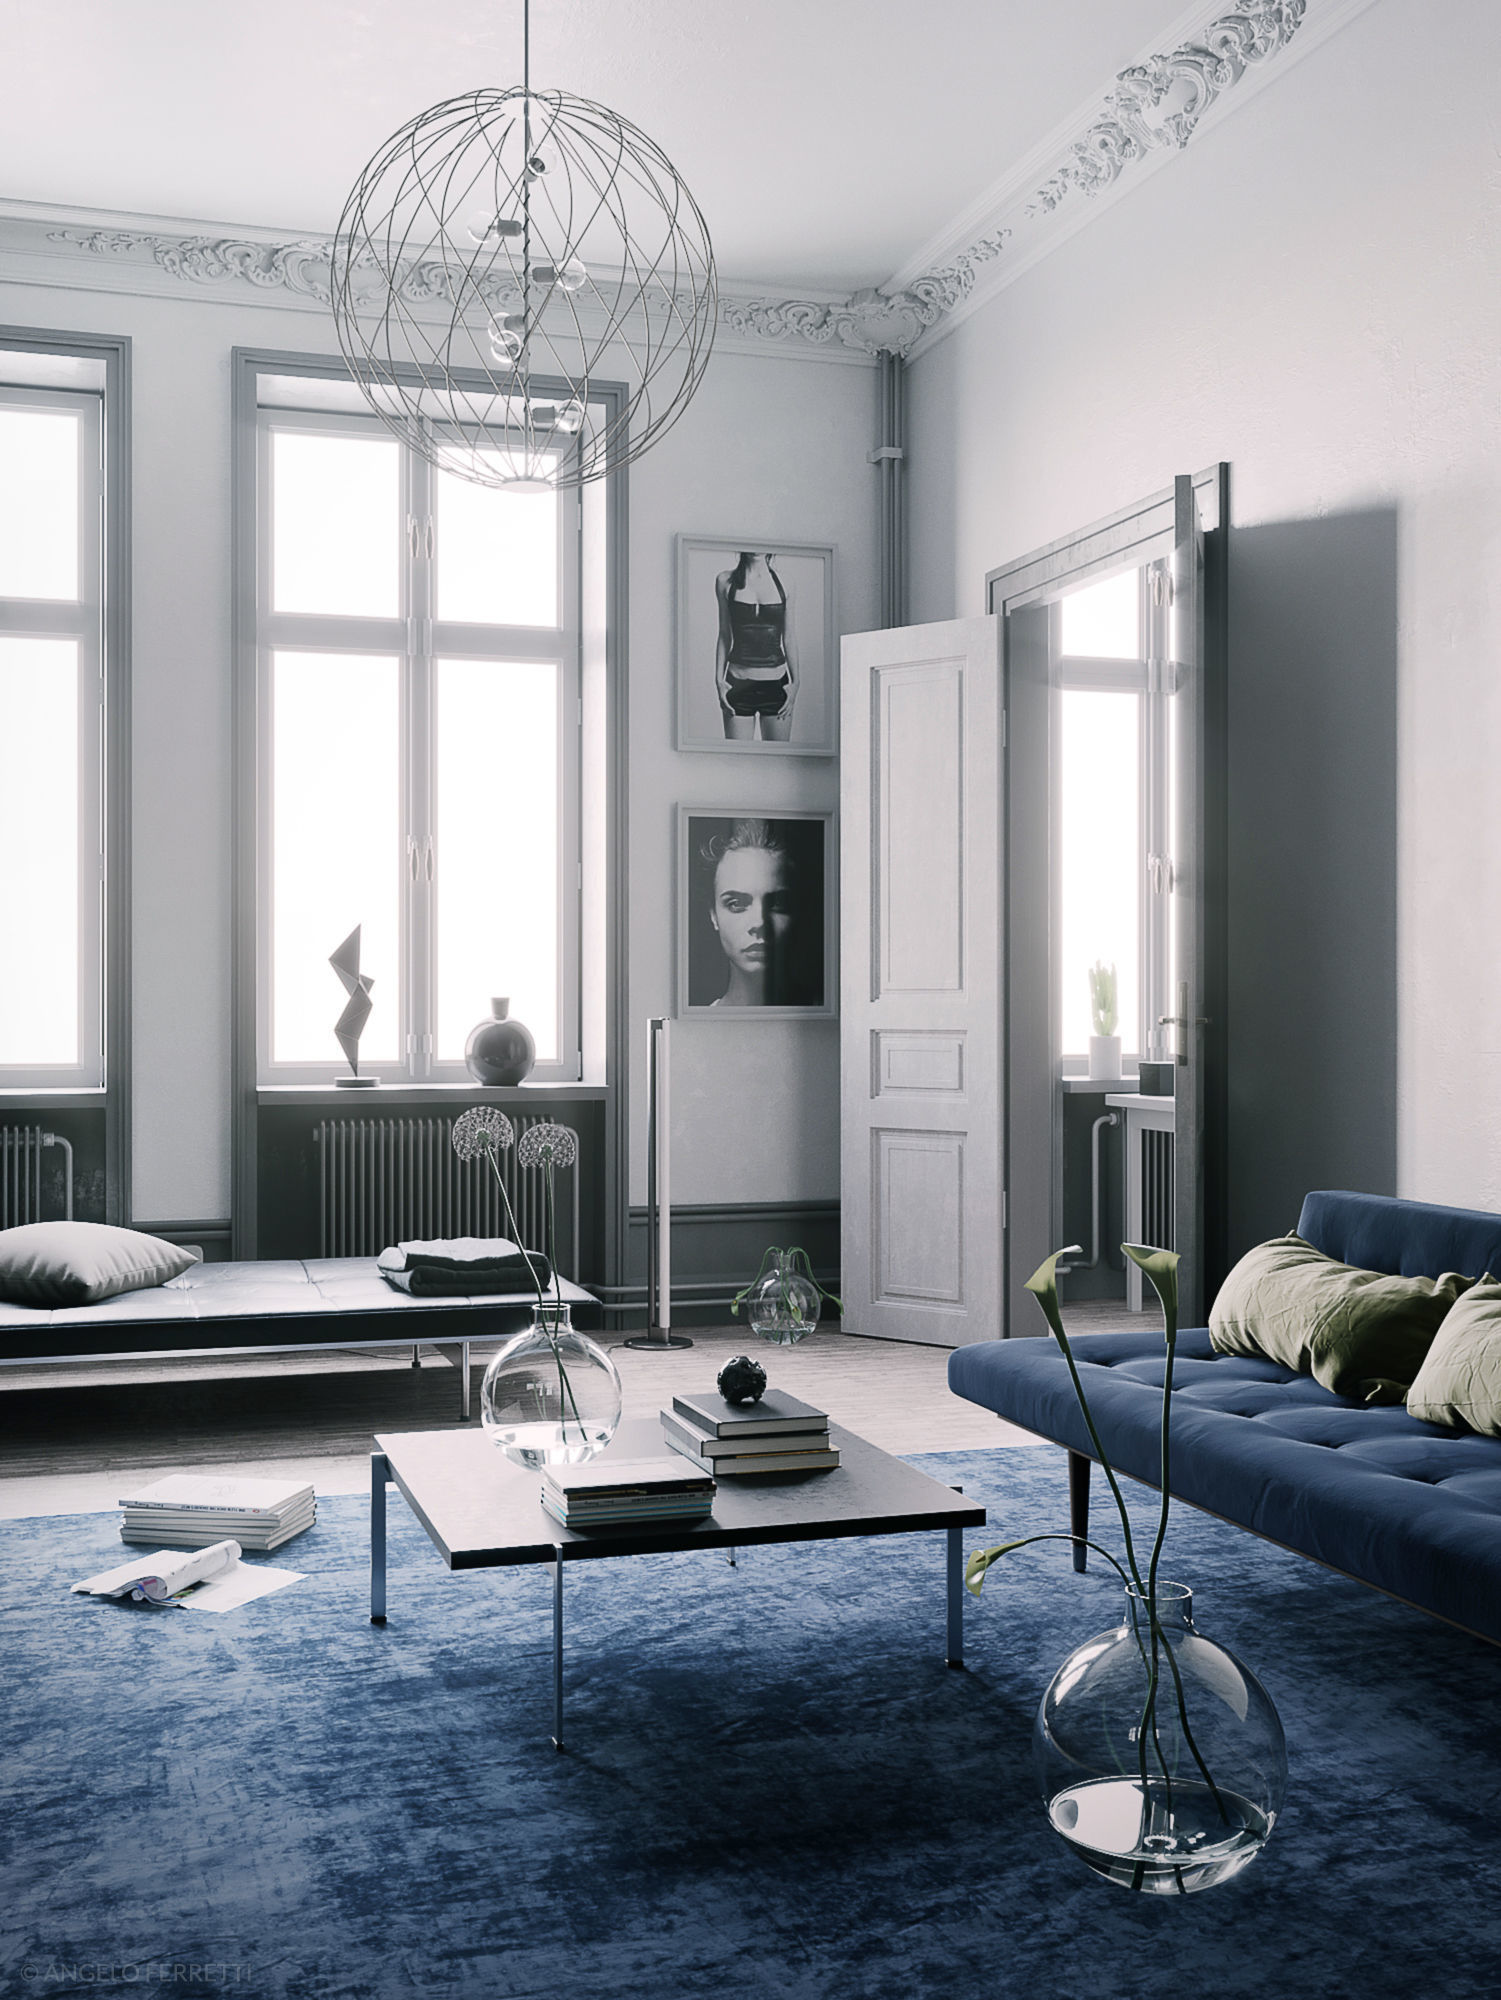 Blue Scandinavian Interior scene